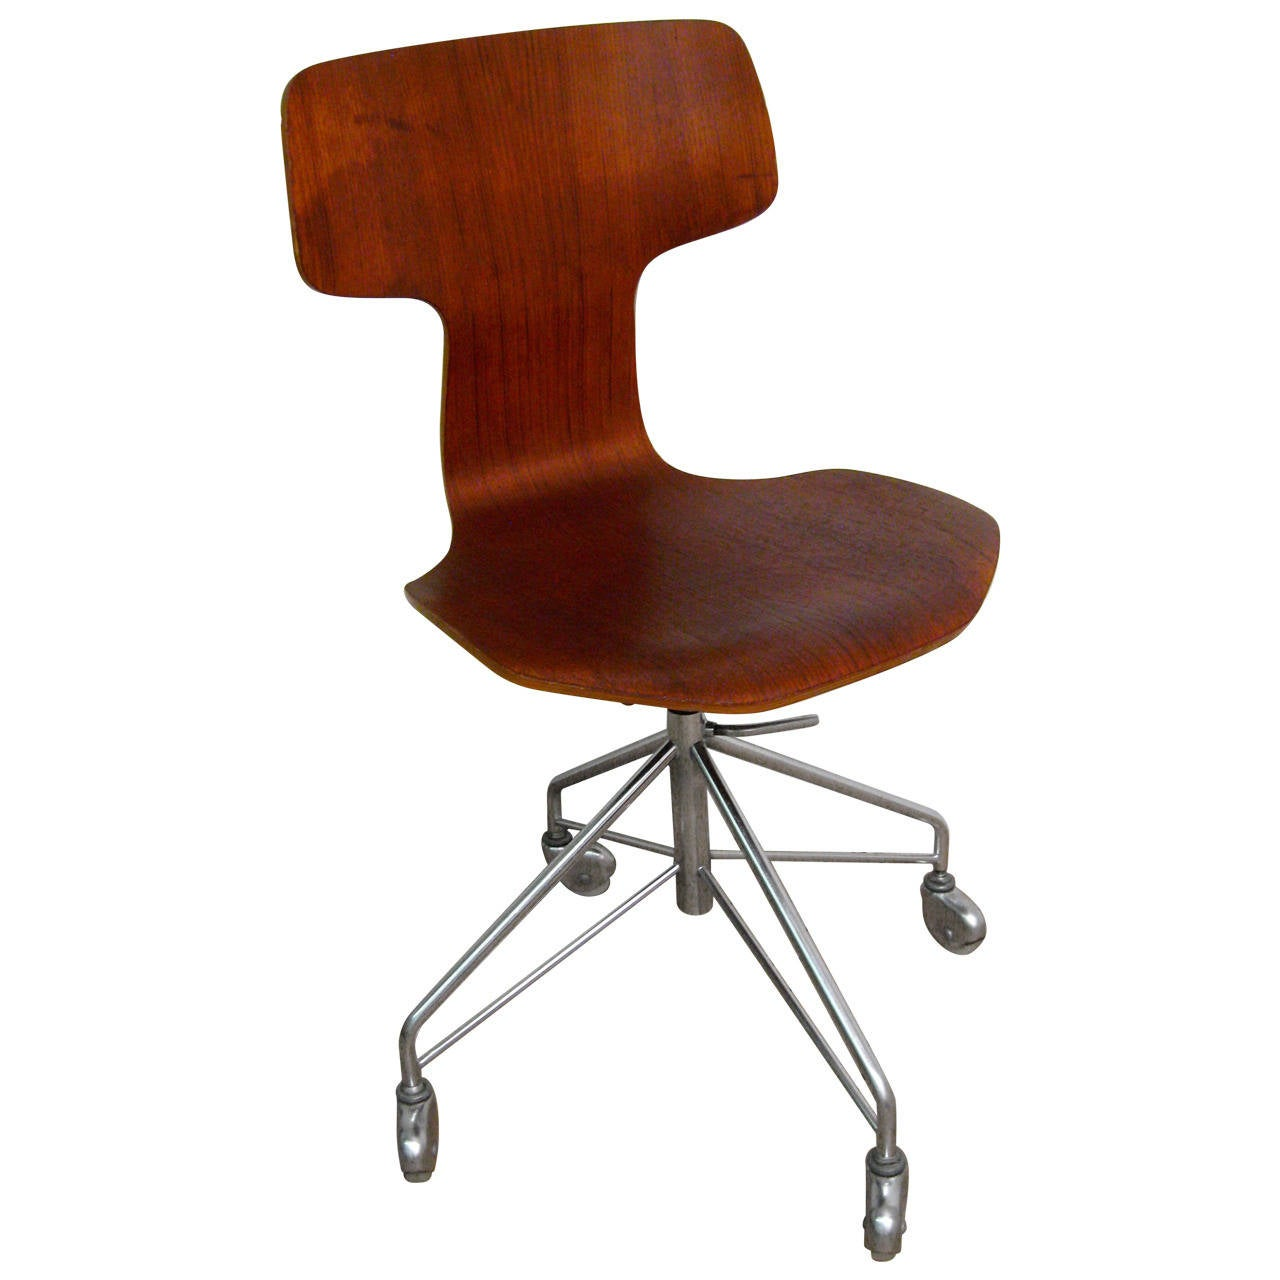 arne jacobsen for fritz hansen teak desk chair model 1